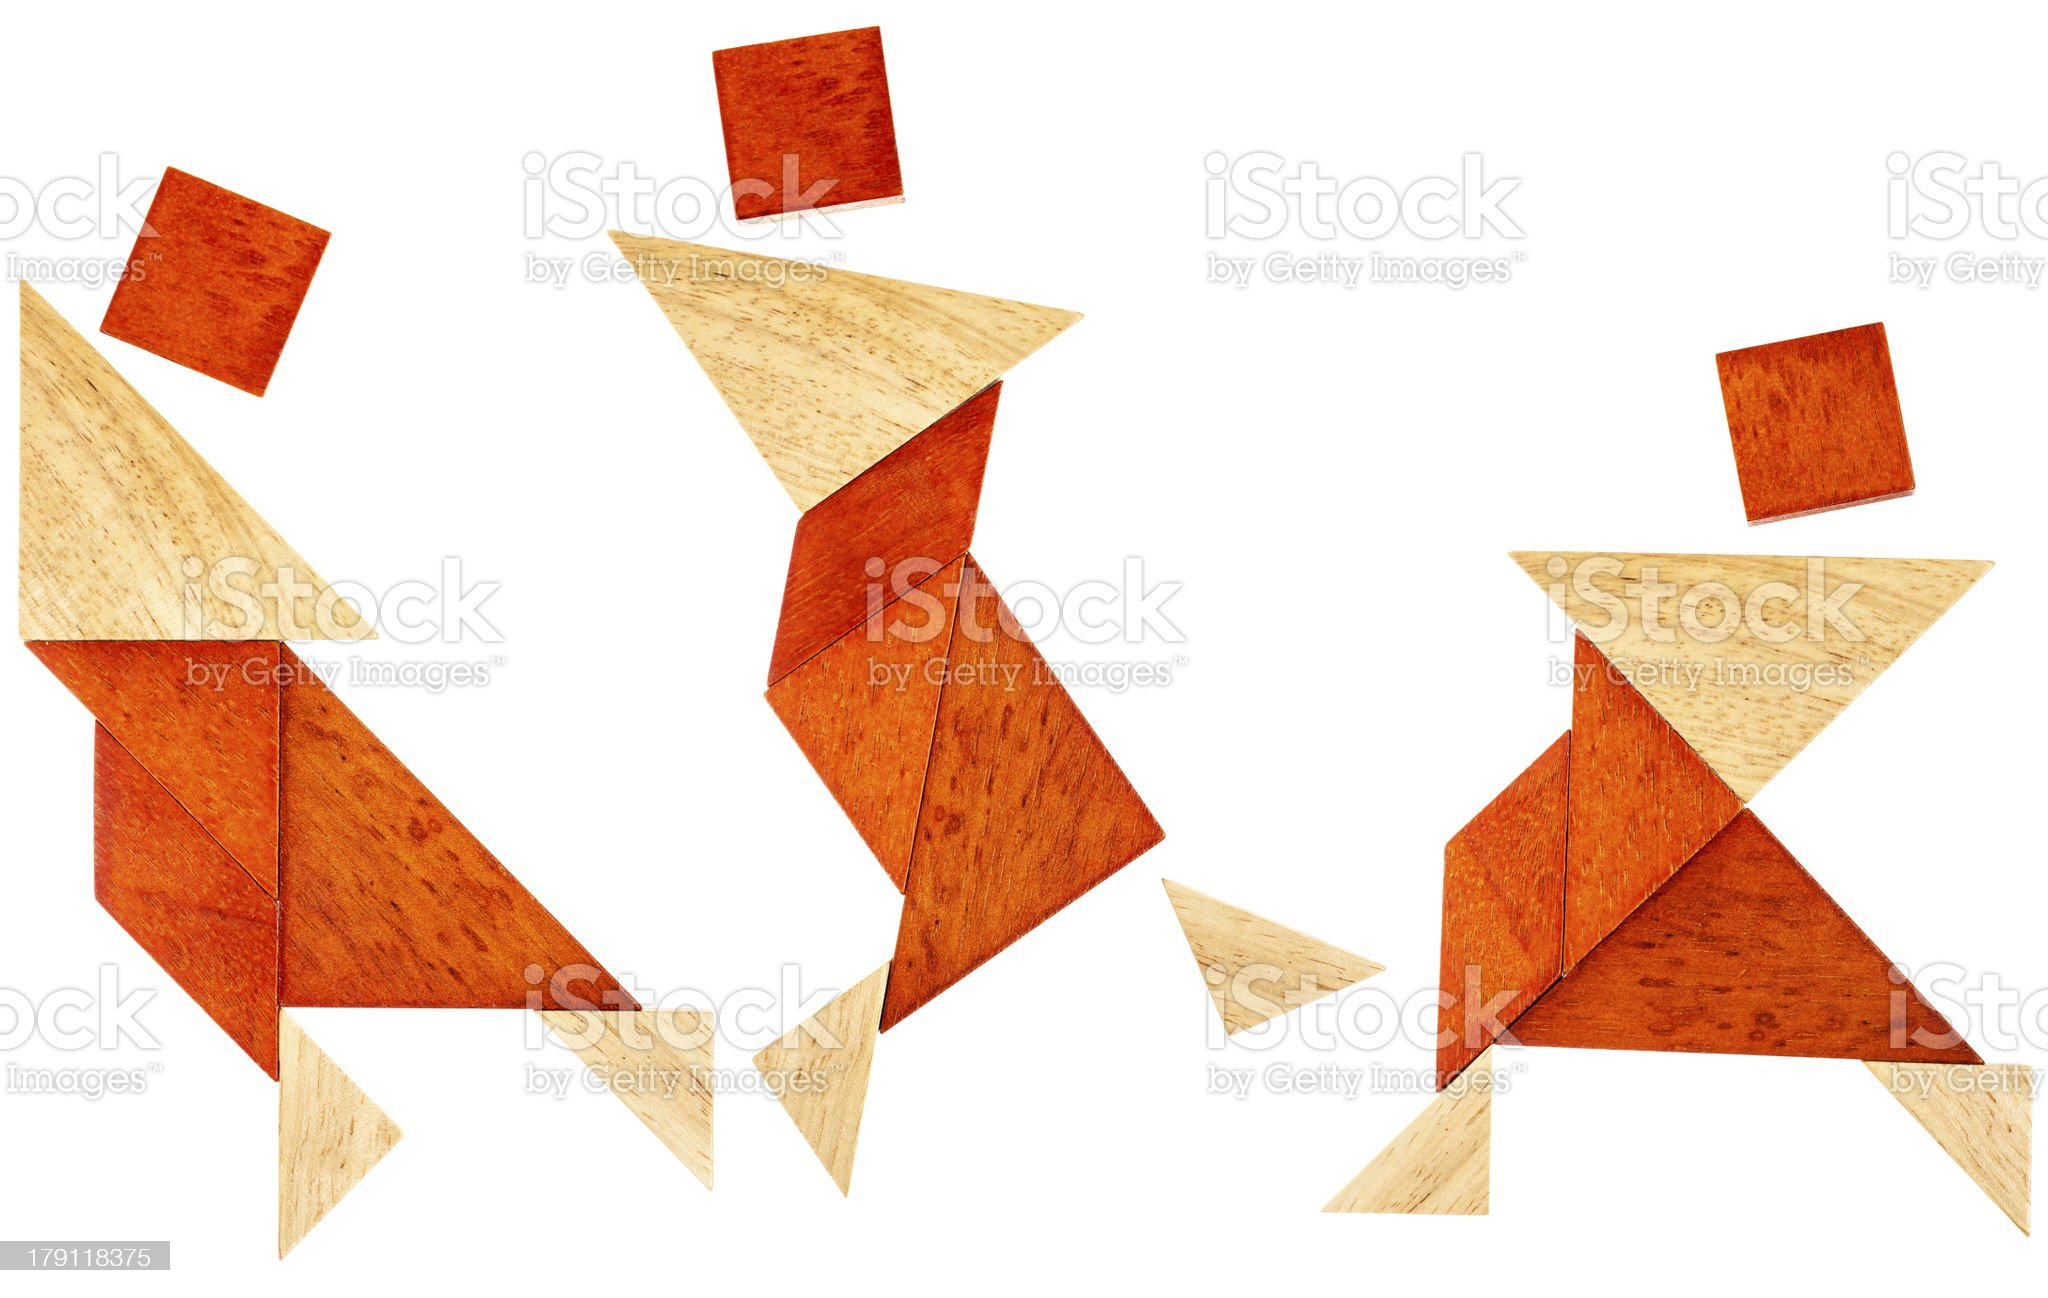 tangram dancer or martial fighter royalty-free stock photo